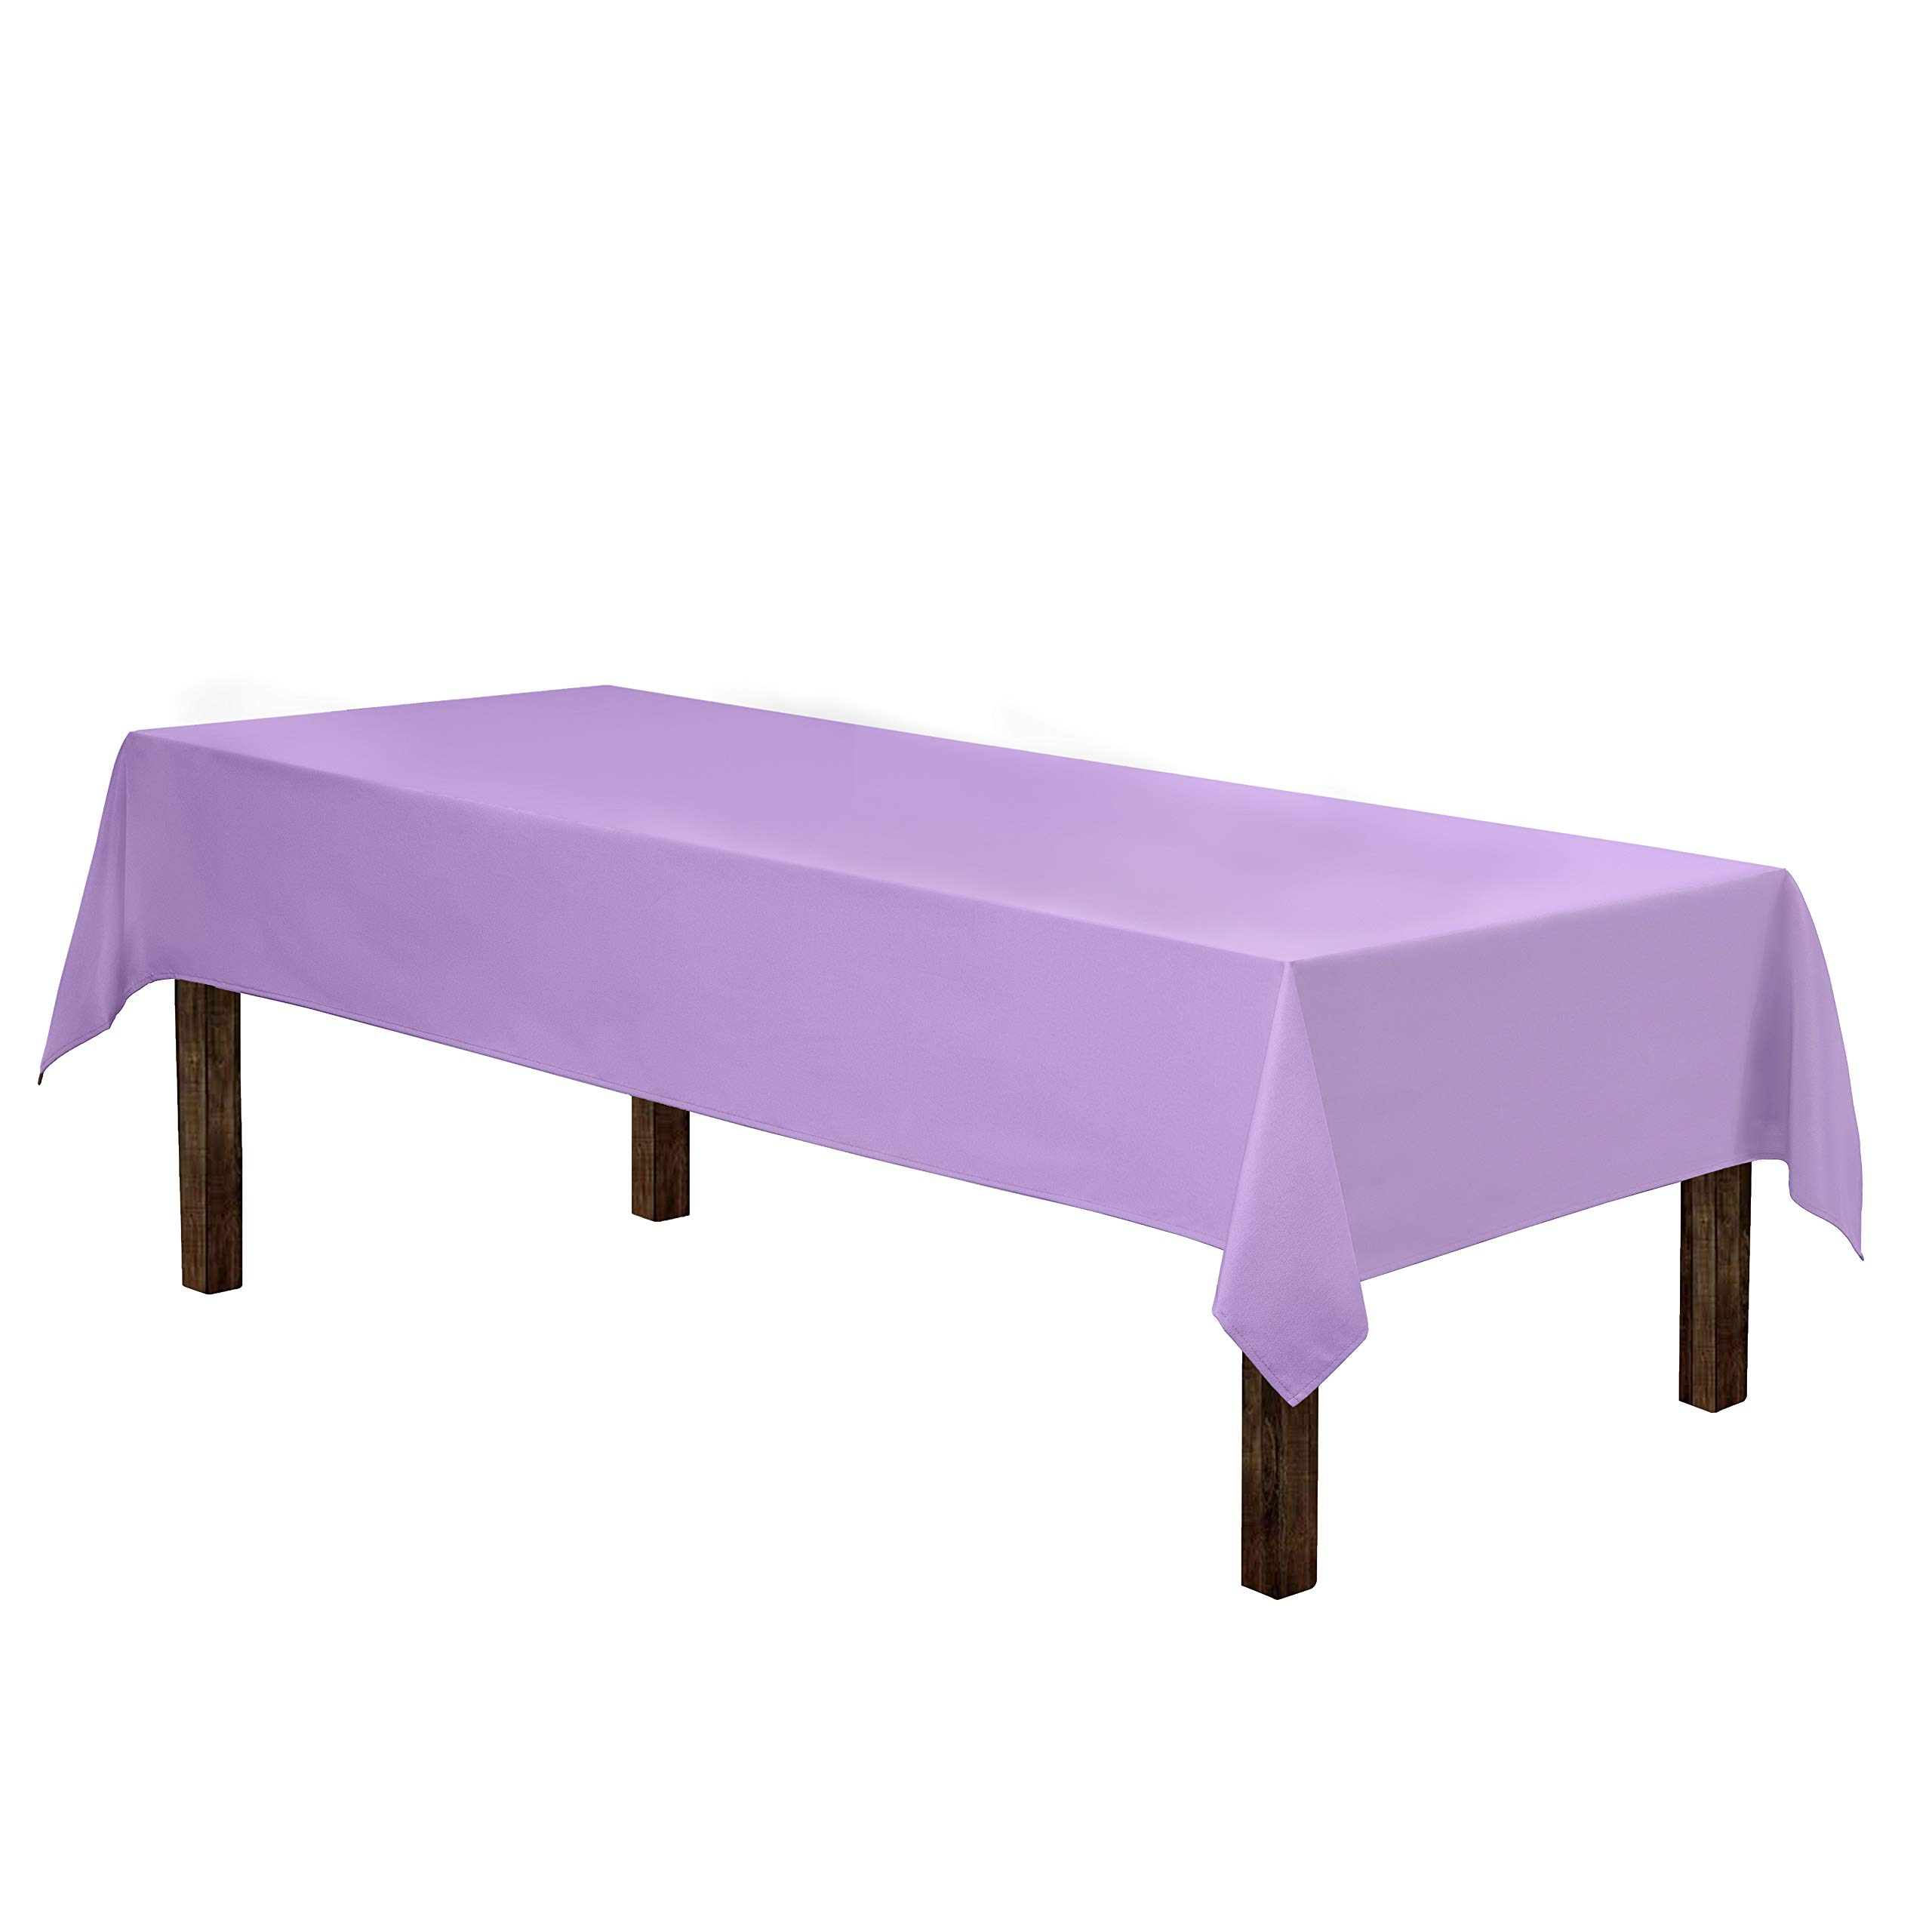 """Gee Di Moda Rectangle Tablecloth - 60 x 126"""" Inch - Lavender Rectangular Table Cloth for 8 Foot Table in Washable Polyester - Great for Buffet Table, Parties, Holiday Dinner, Wedding & More"""